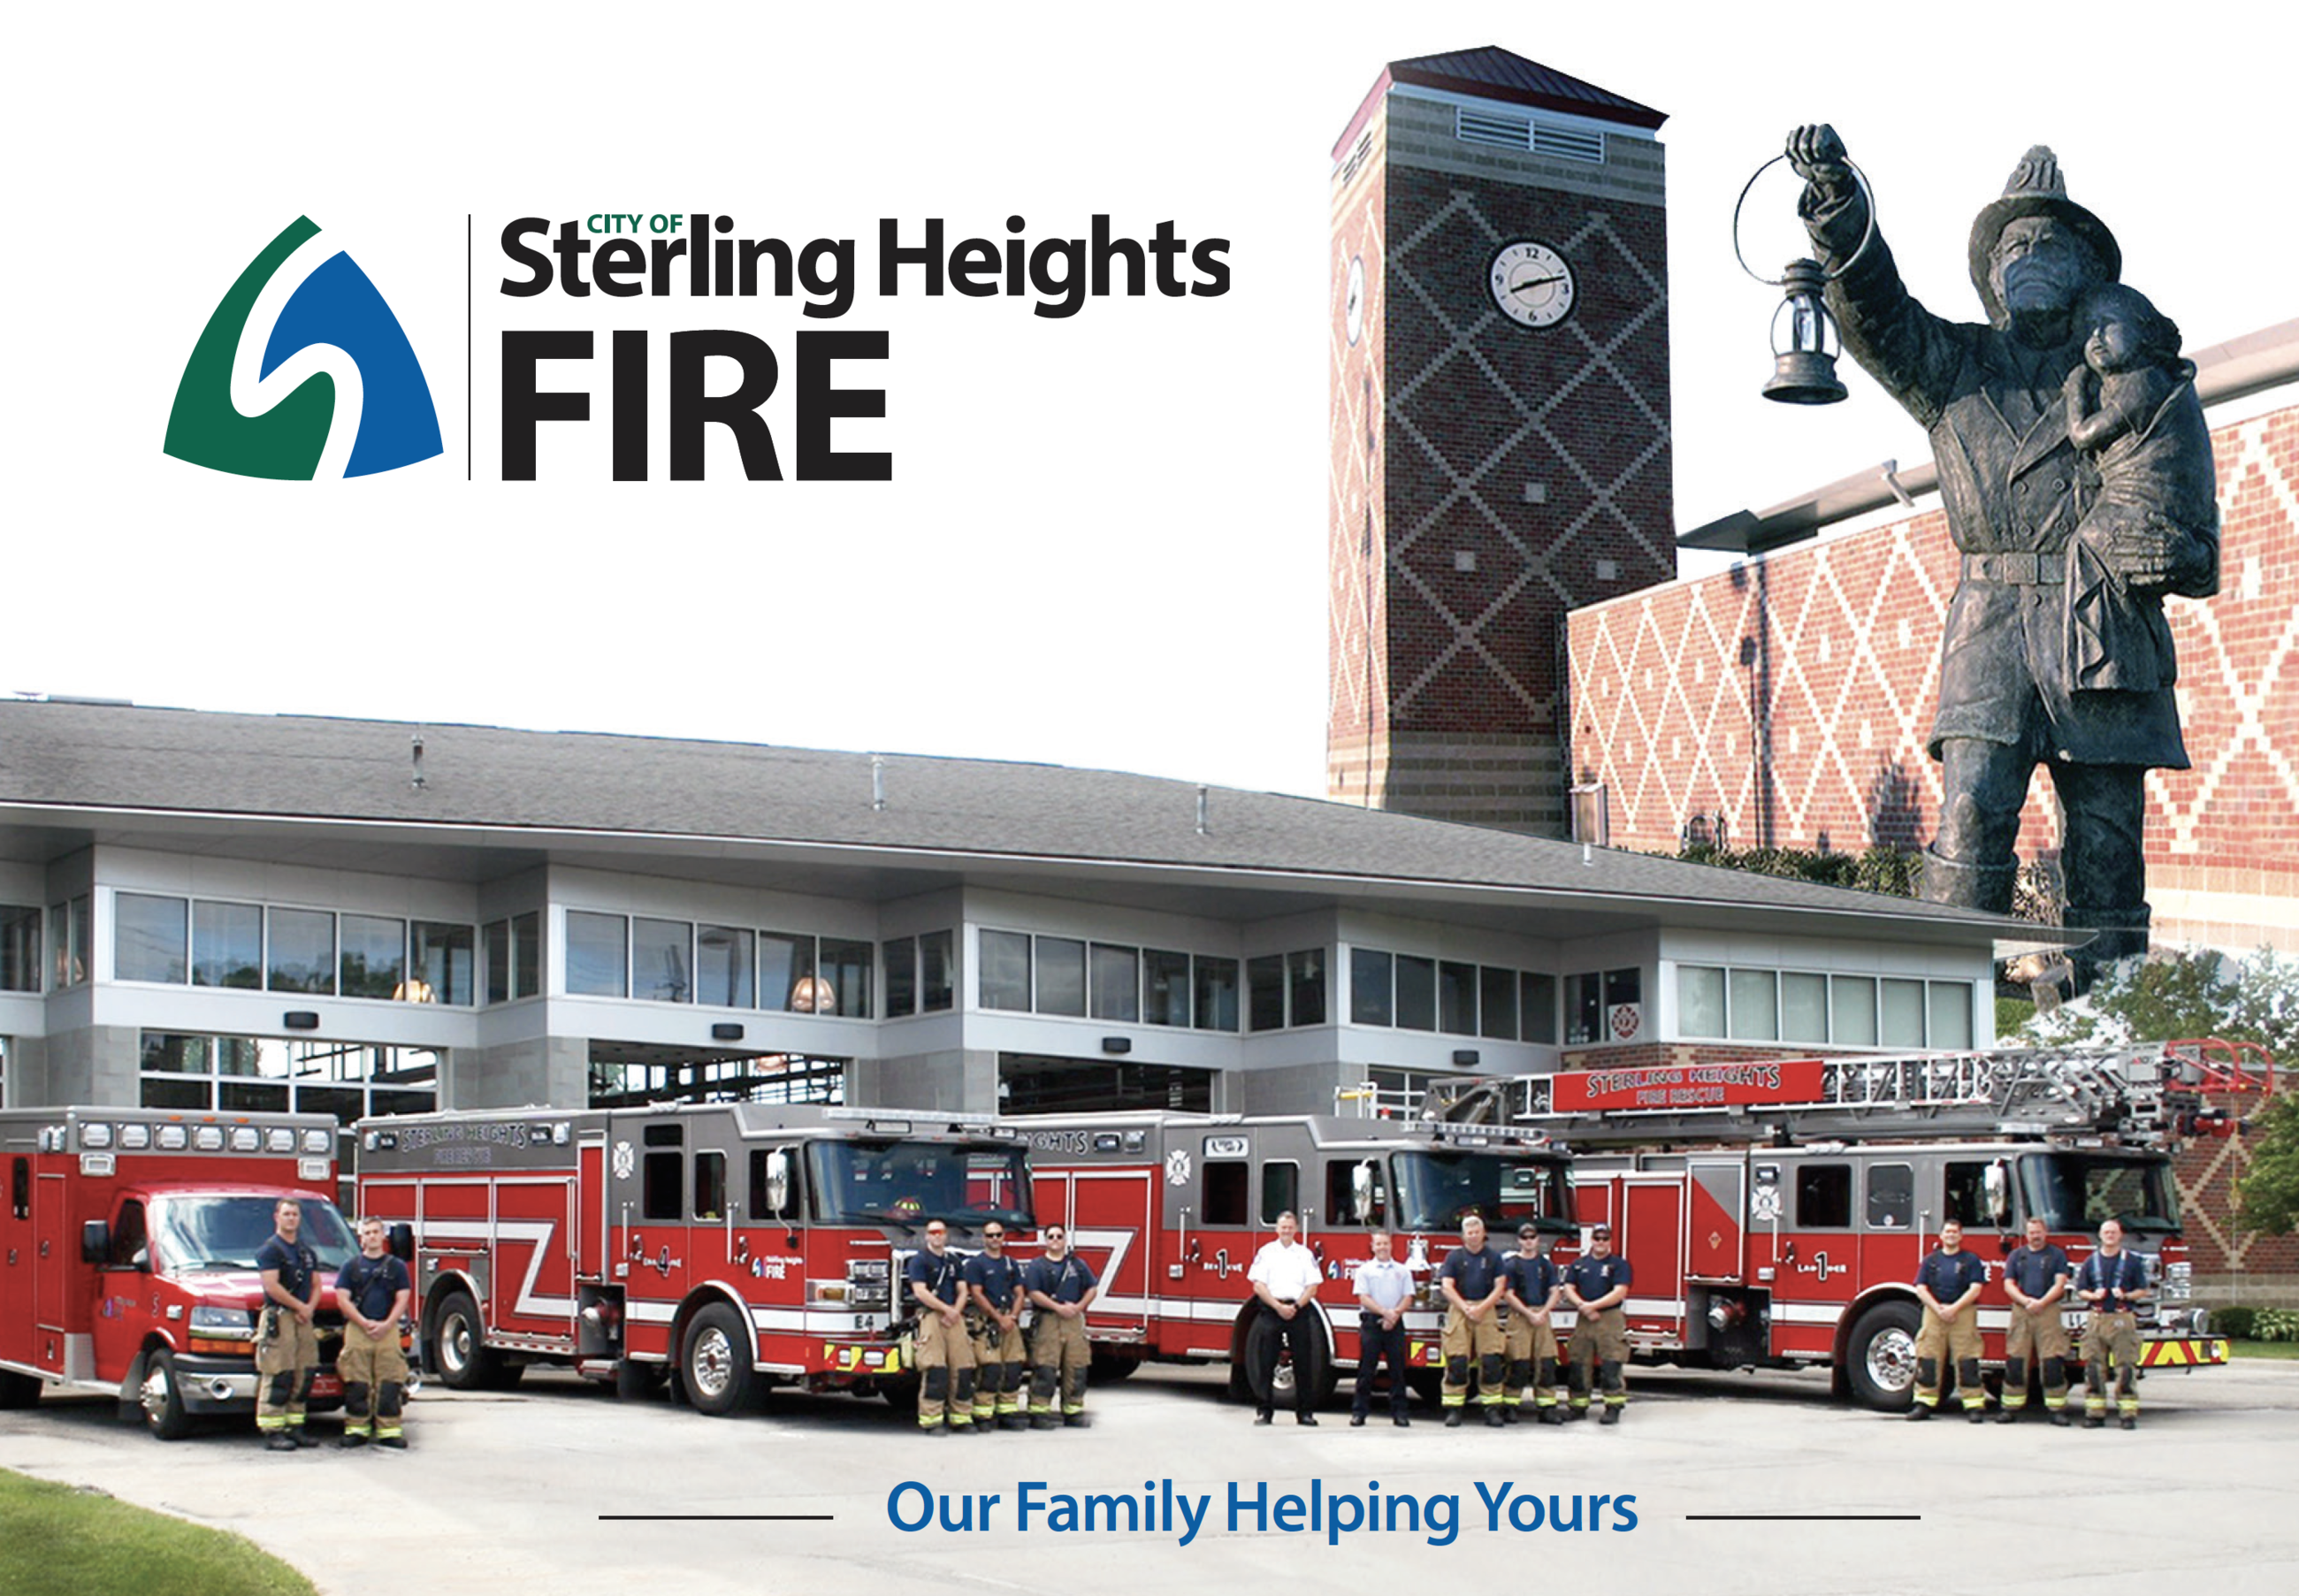 Fire Department | Sterling Heights, MI - Official Website